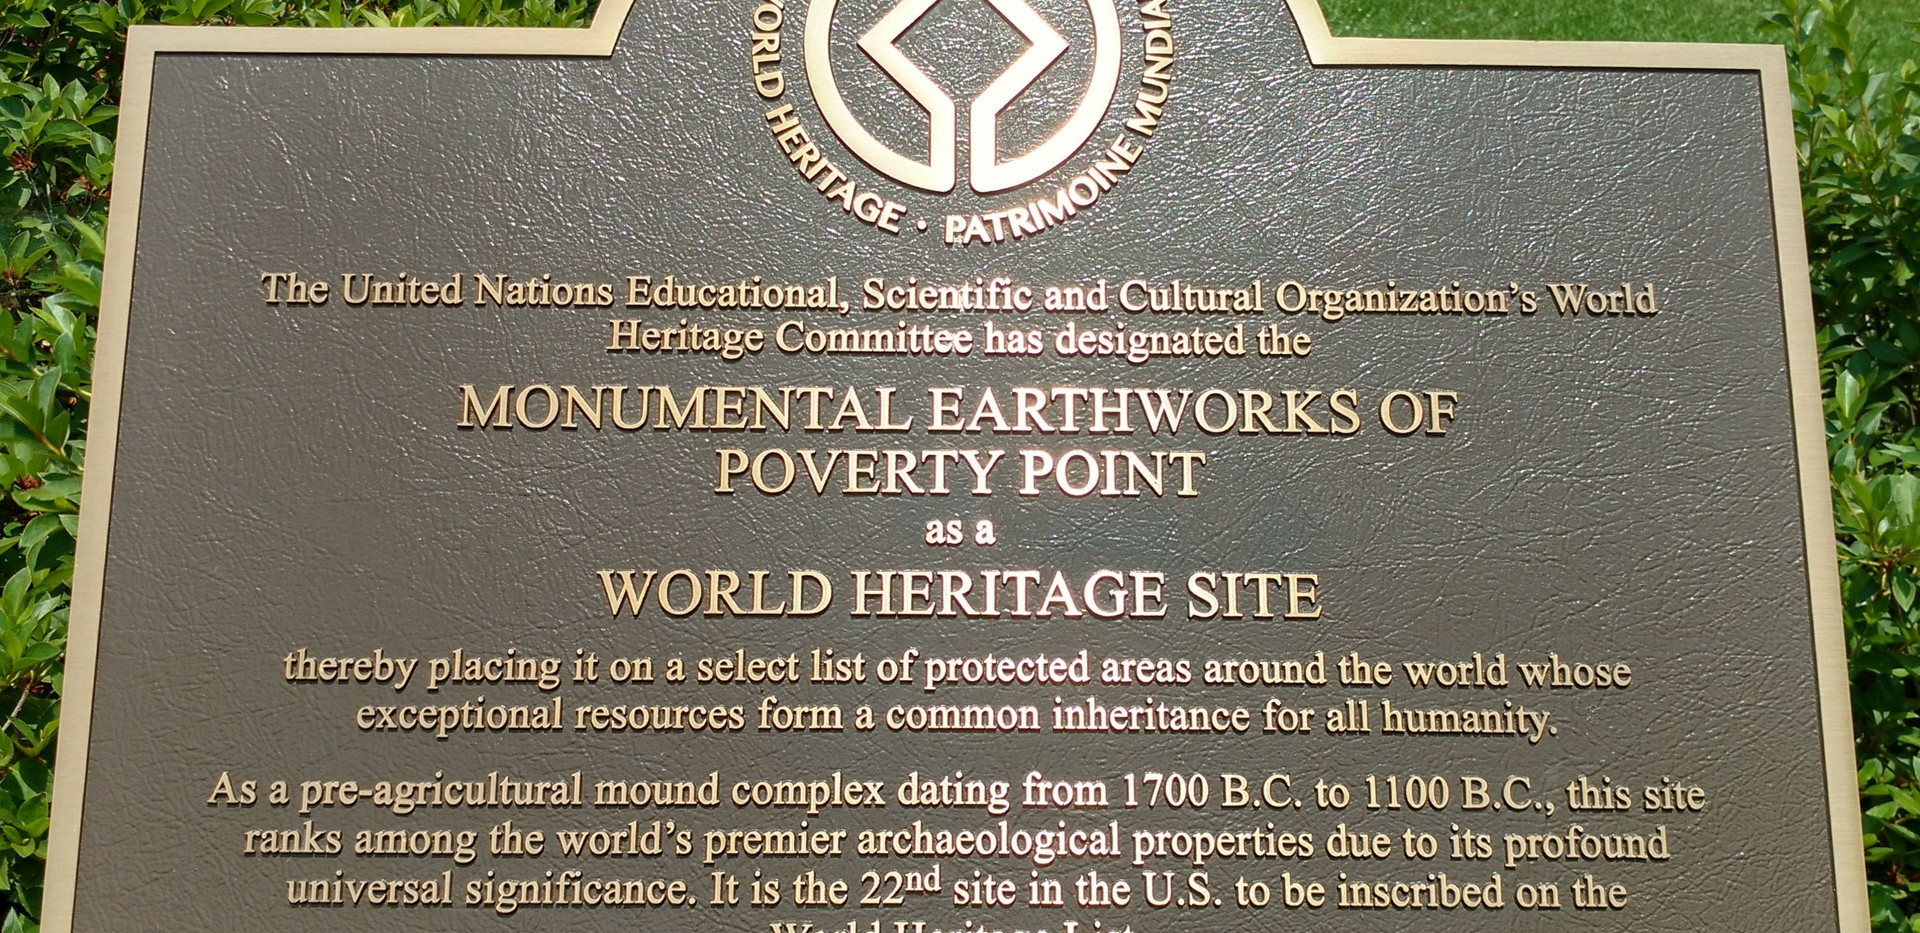 Poverty Point.jpg